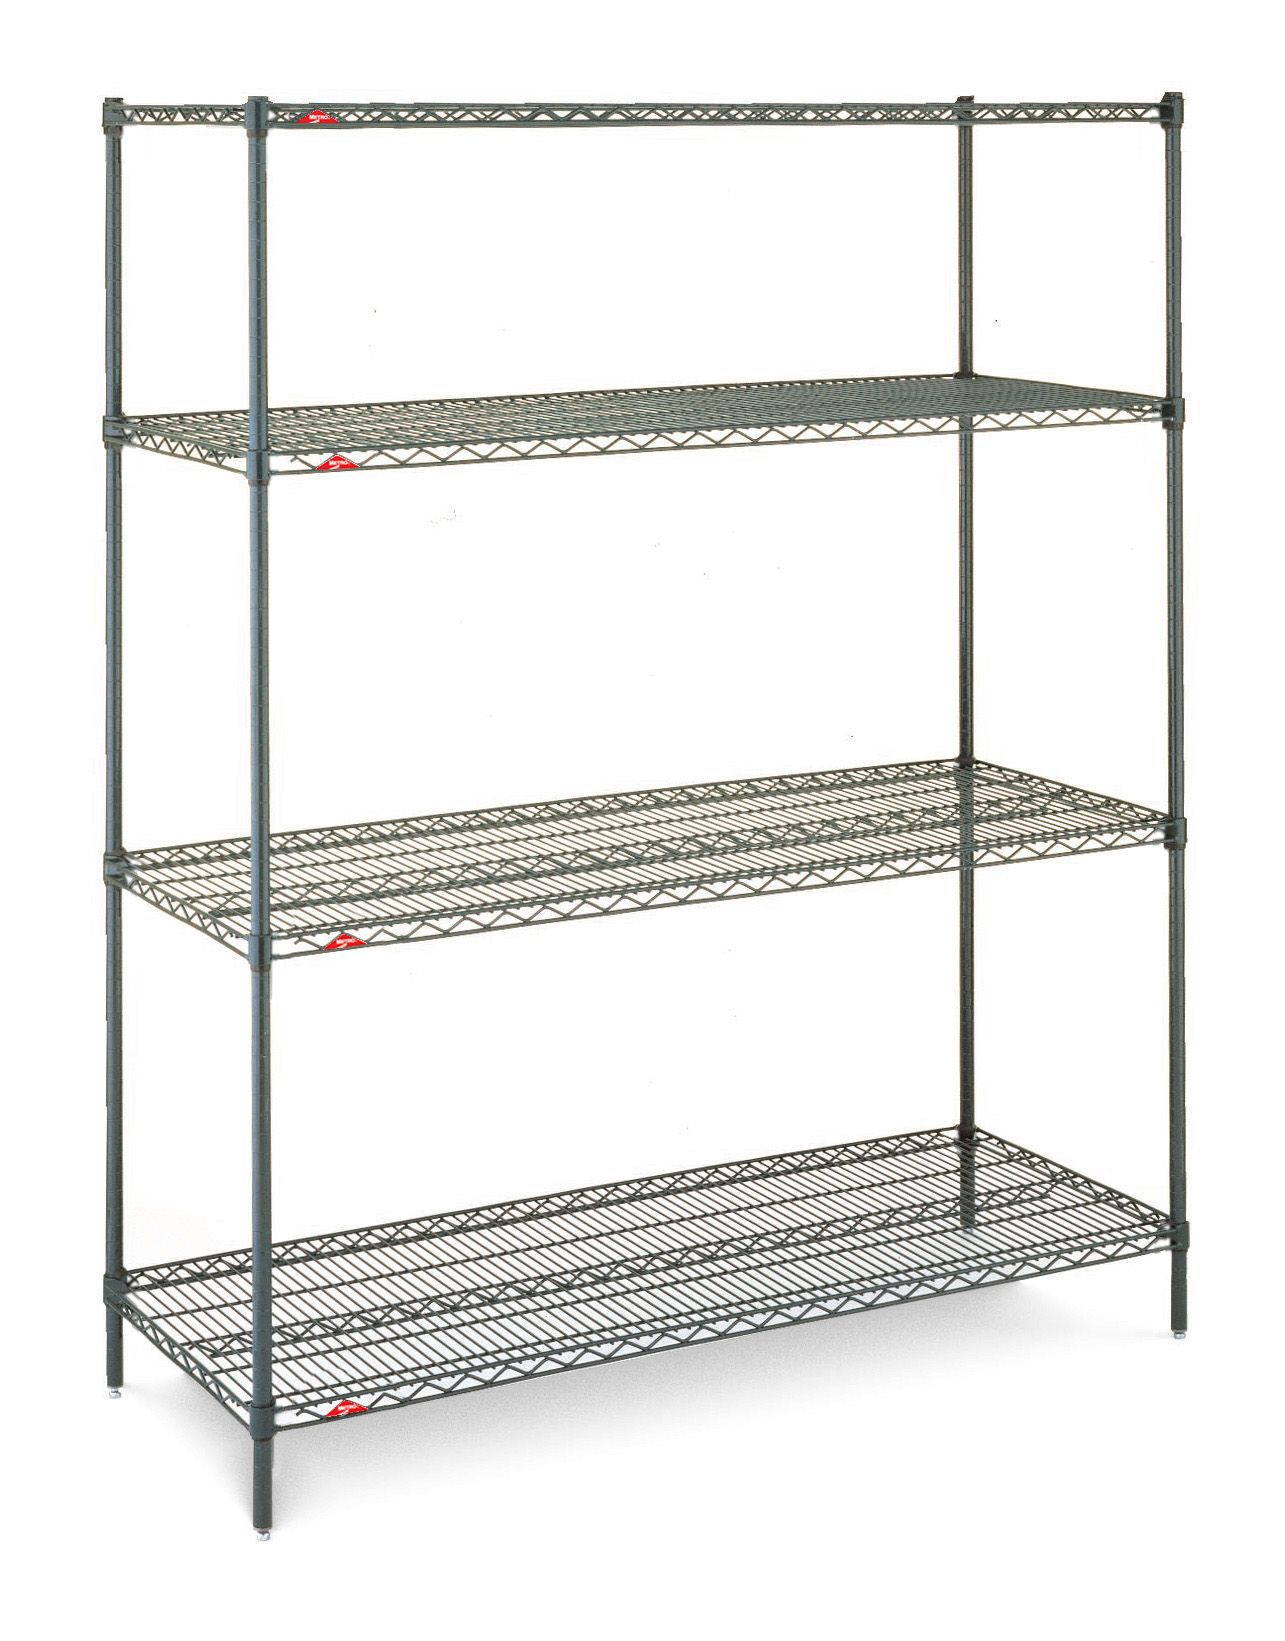 Super Erecta Shelving Wire Shelving Wire Shelving Units Storage Spaces